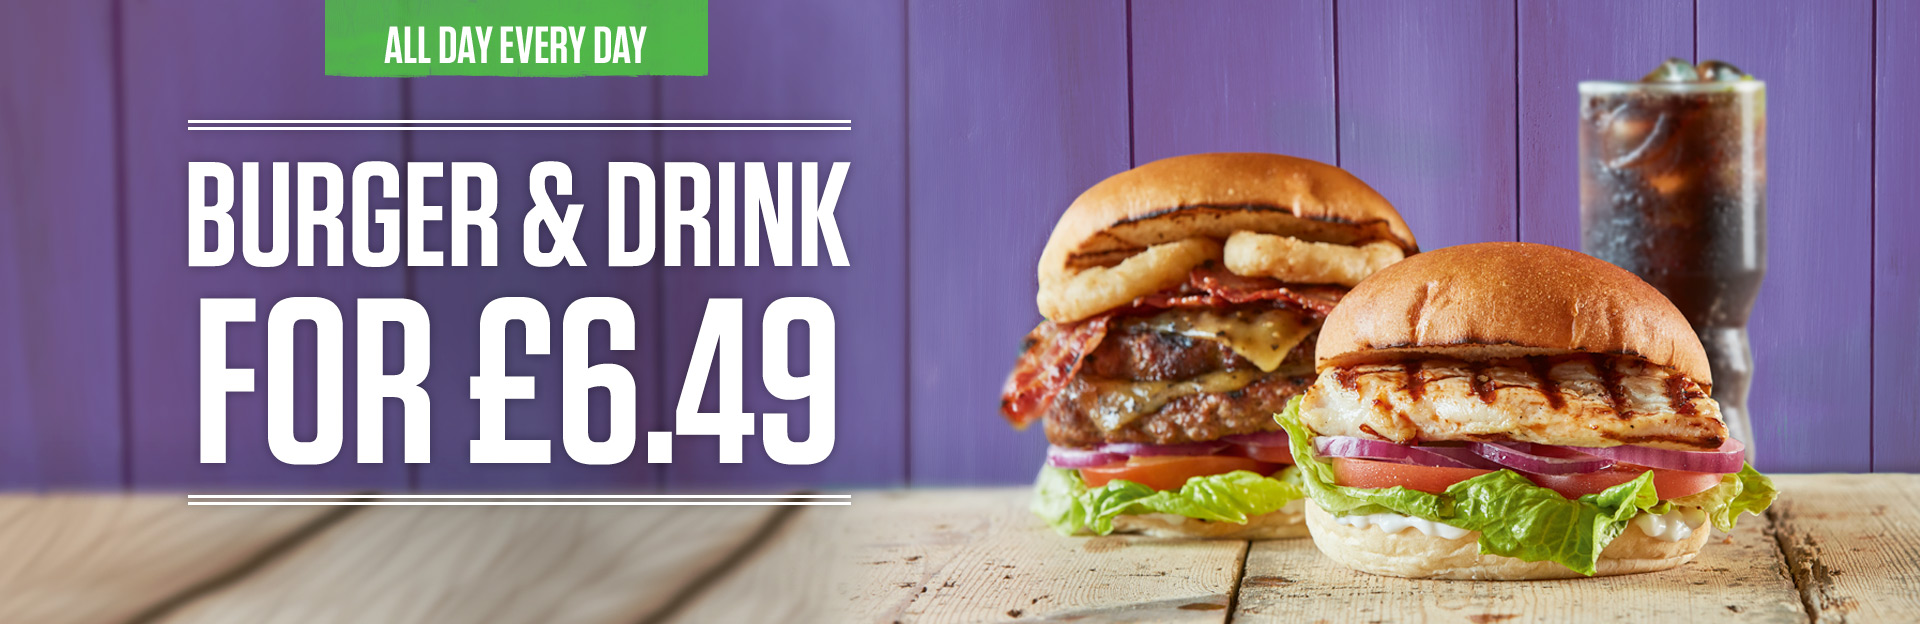 Burger and Drink Deal at The Riftswood